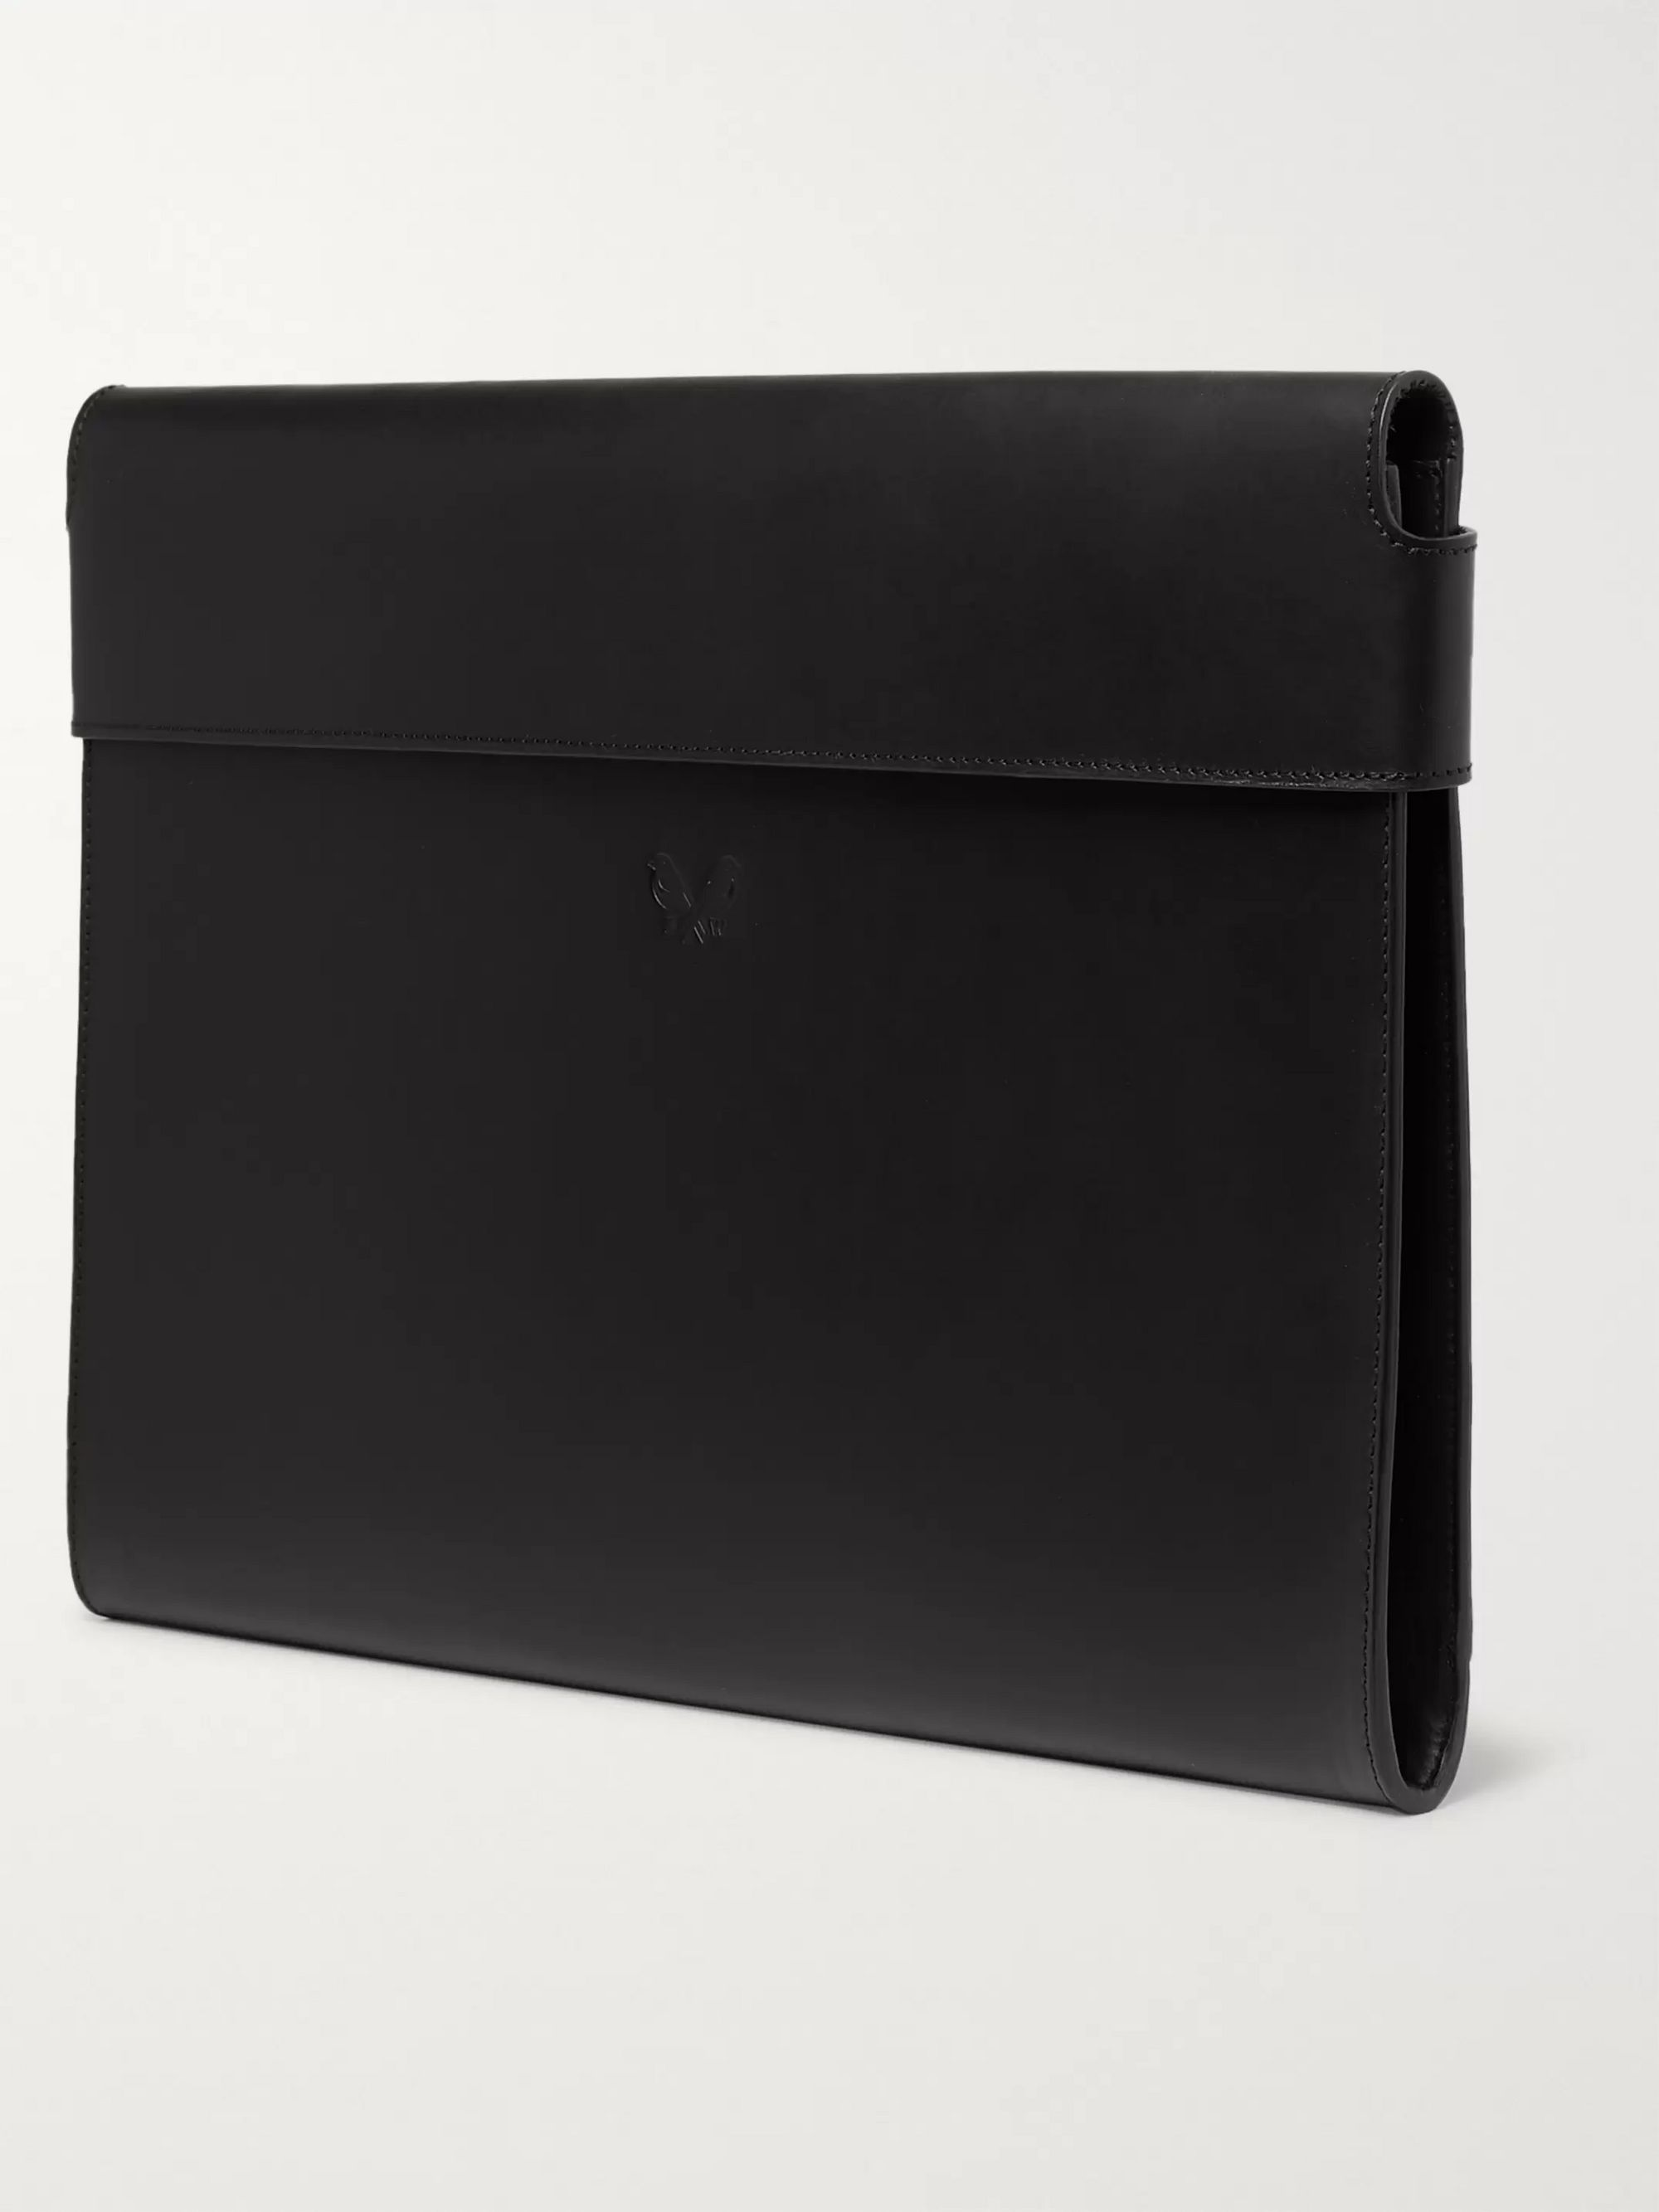 Bennett Winch Leather Folio